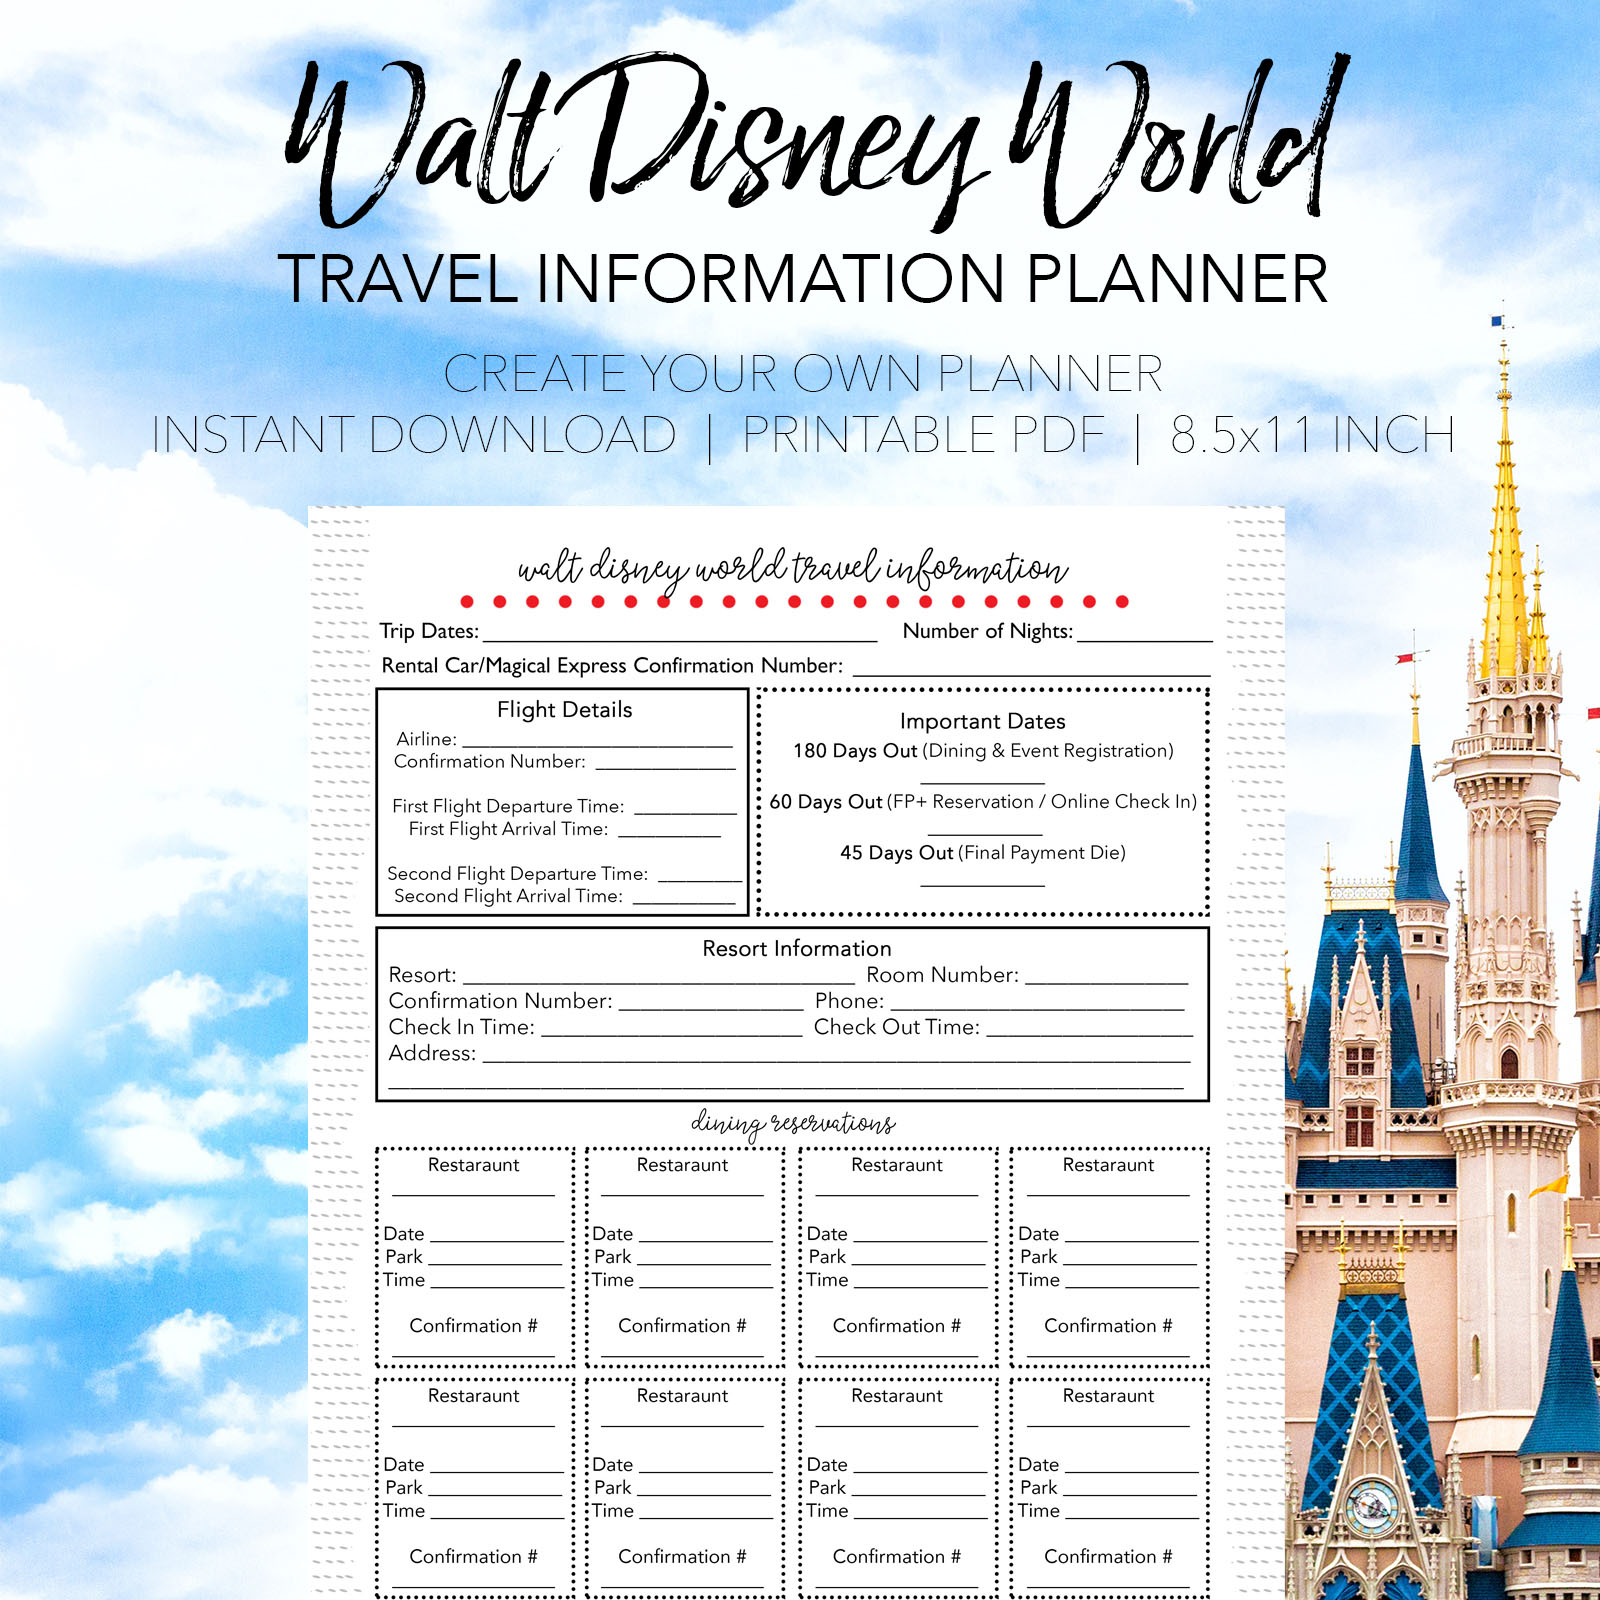 Travel Information Planner - Create Your Own Walt Disney World Planner - Dream Plan Fly